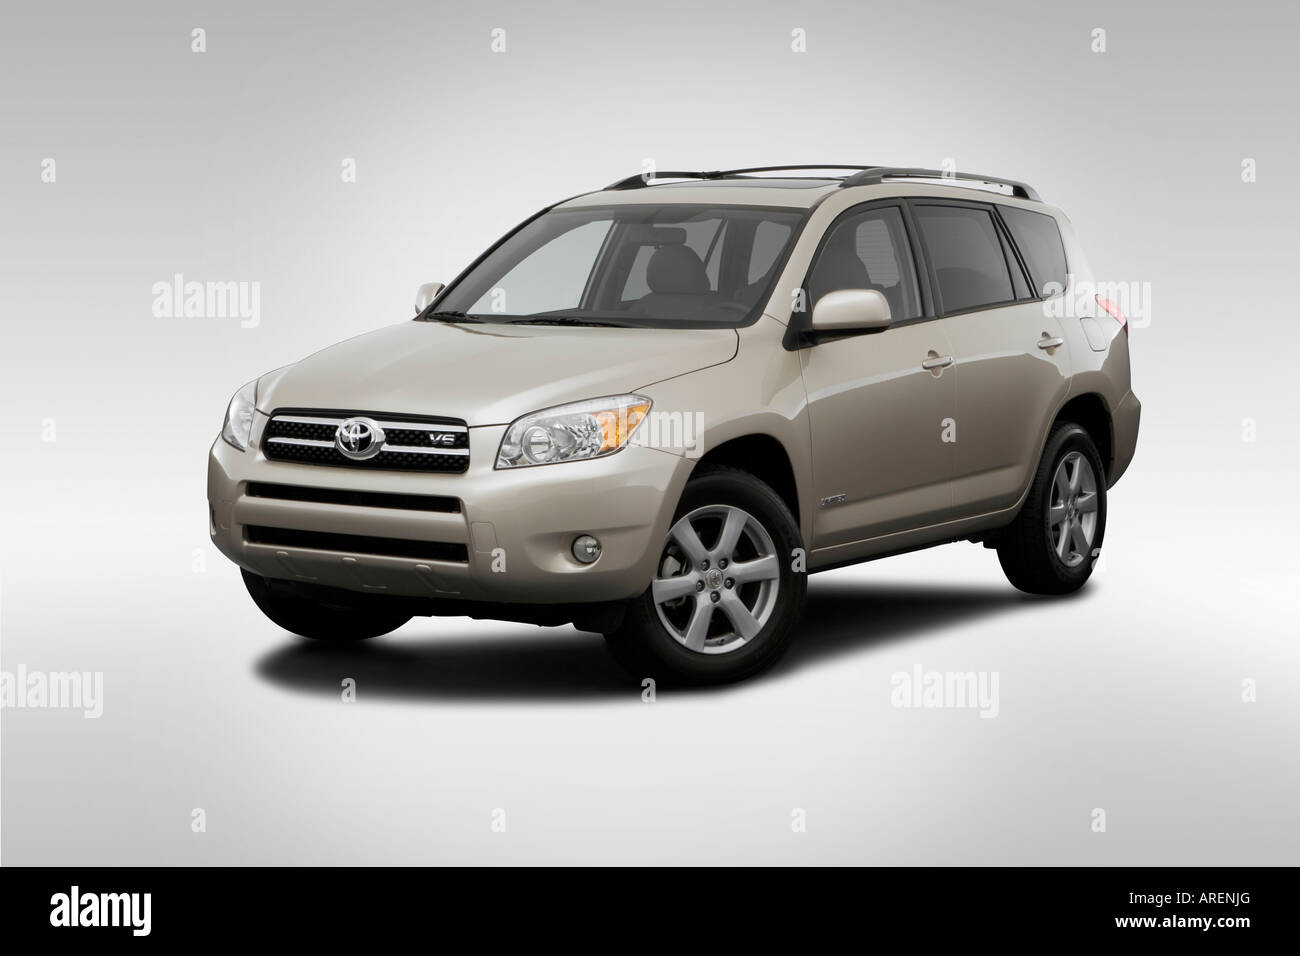 2006 toyota rav4 limited in beige front angle view stock photo